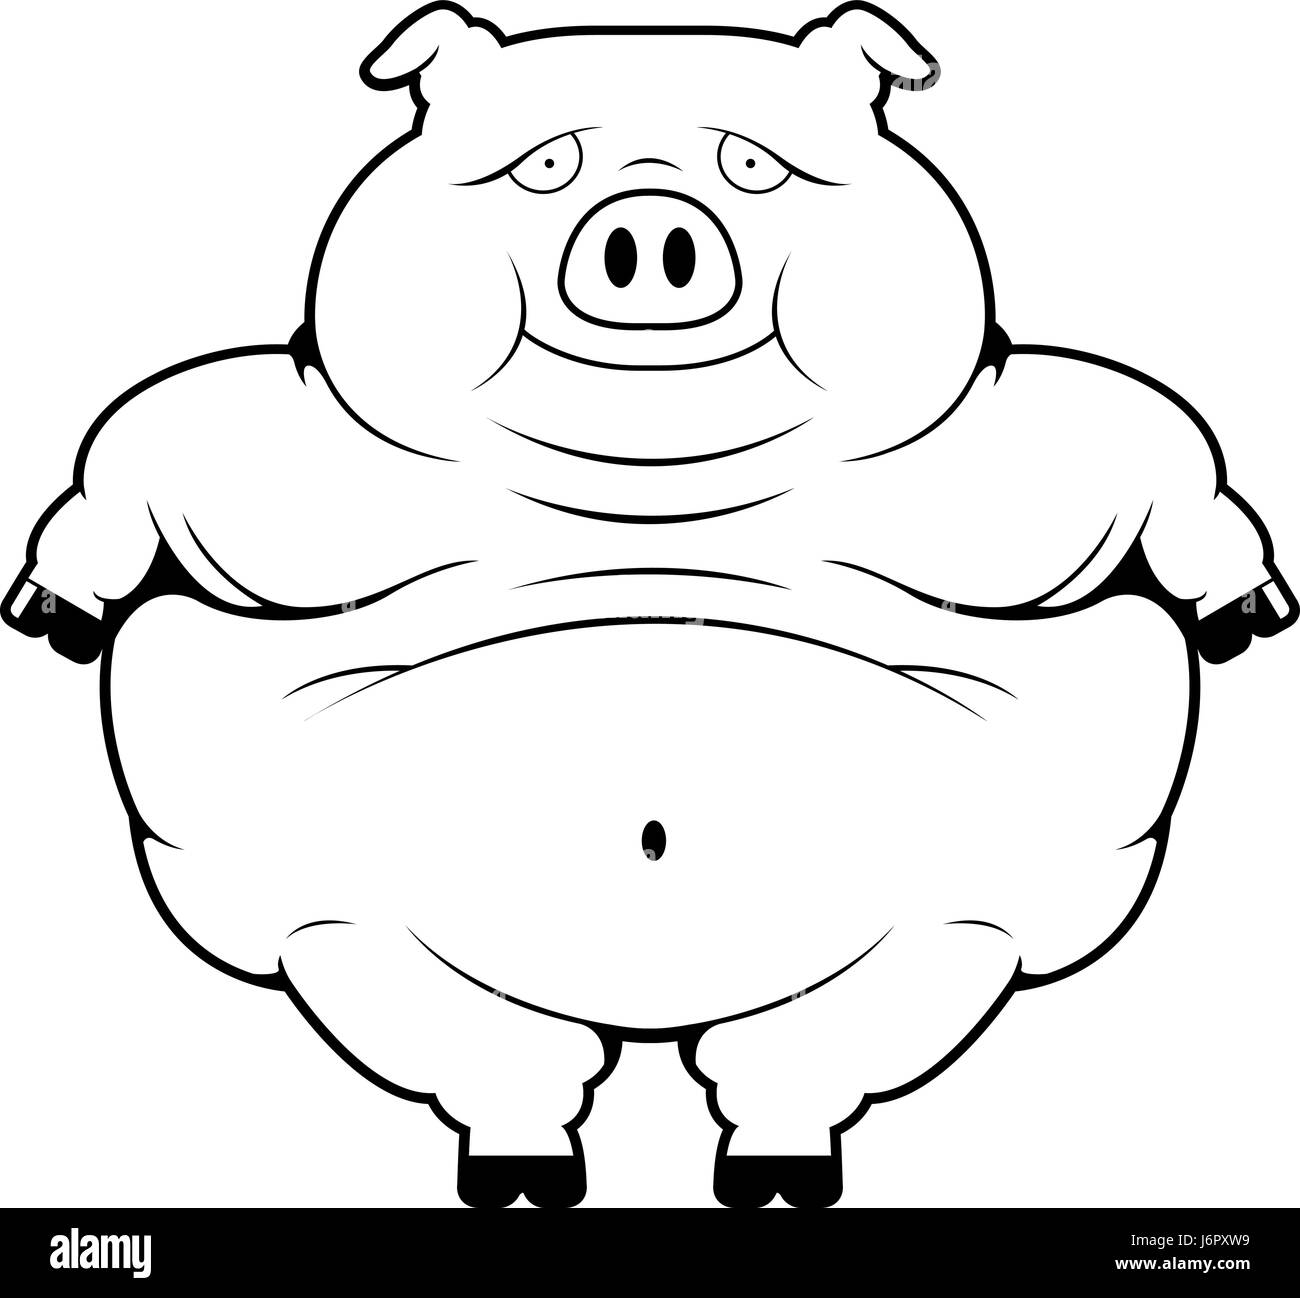 gluttony cartoon stock photos u0026 gluttony cartoon stock images alamy